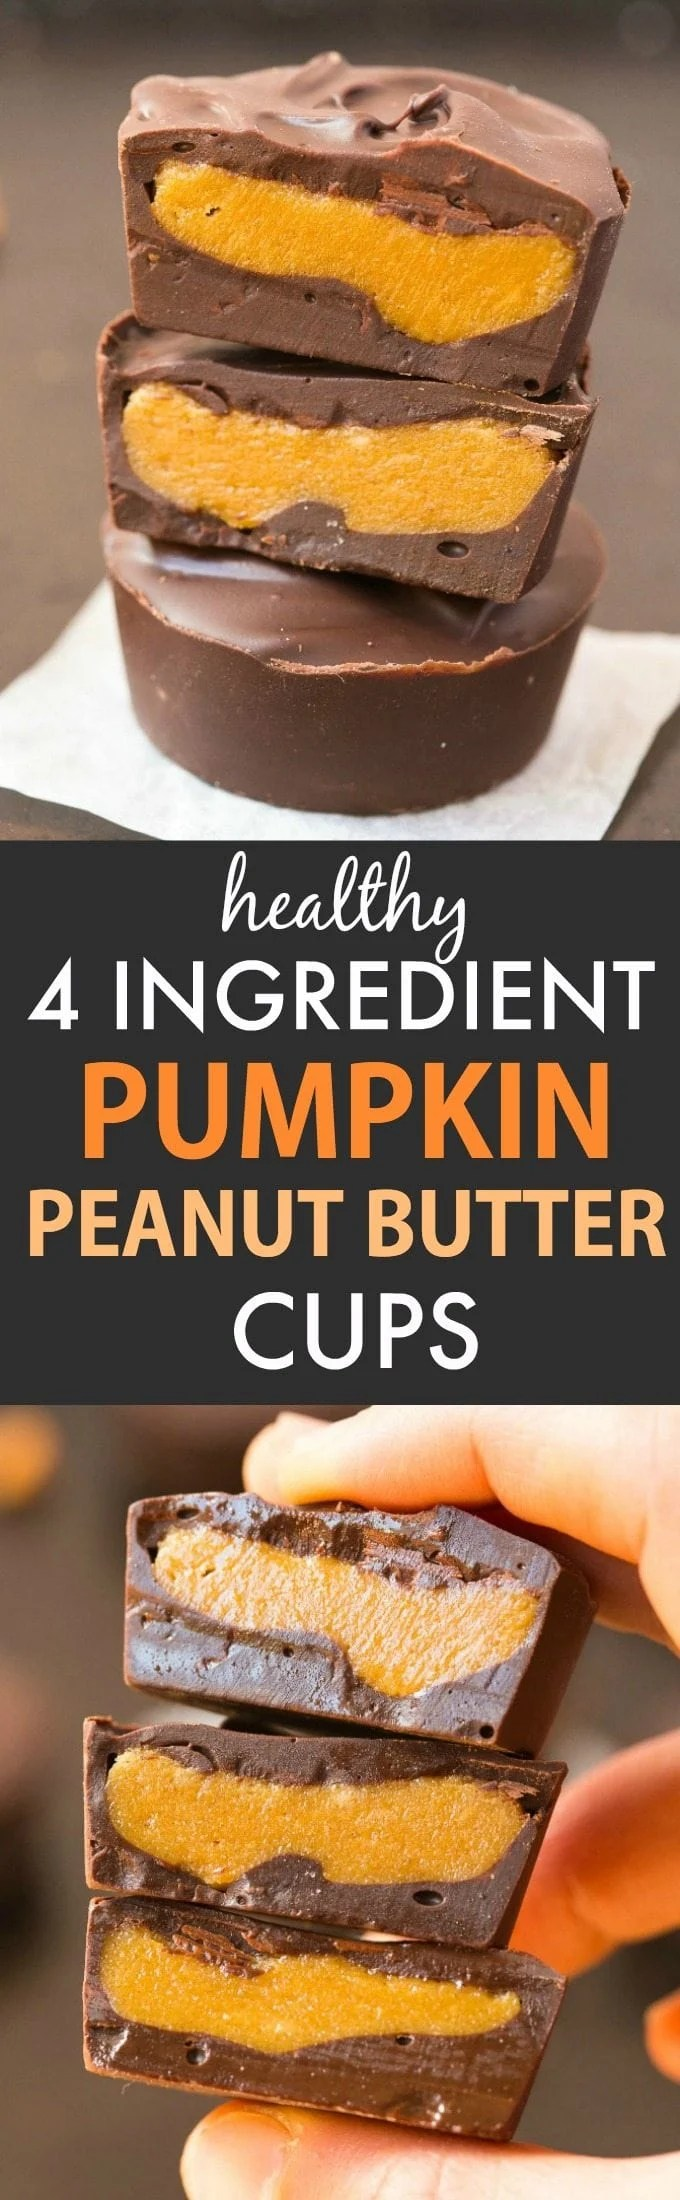 Healthy 4-Ingredient Pumpkin Peanut Butter Cups (V, GF, DF)- Easy, homemade pumpkin peanut butter cups BETTER than Reese's- A creamy fudgy center with a layer of chocolate! {vegan, gluten free, sugar free recipe}- thebigmansworld.com #pumpkin #peanutbutter